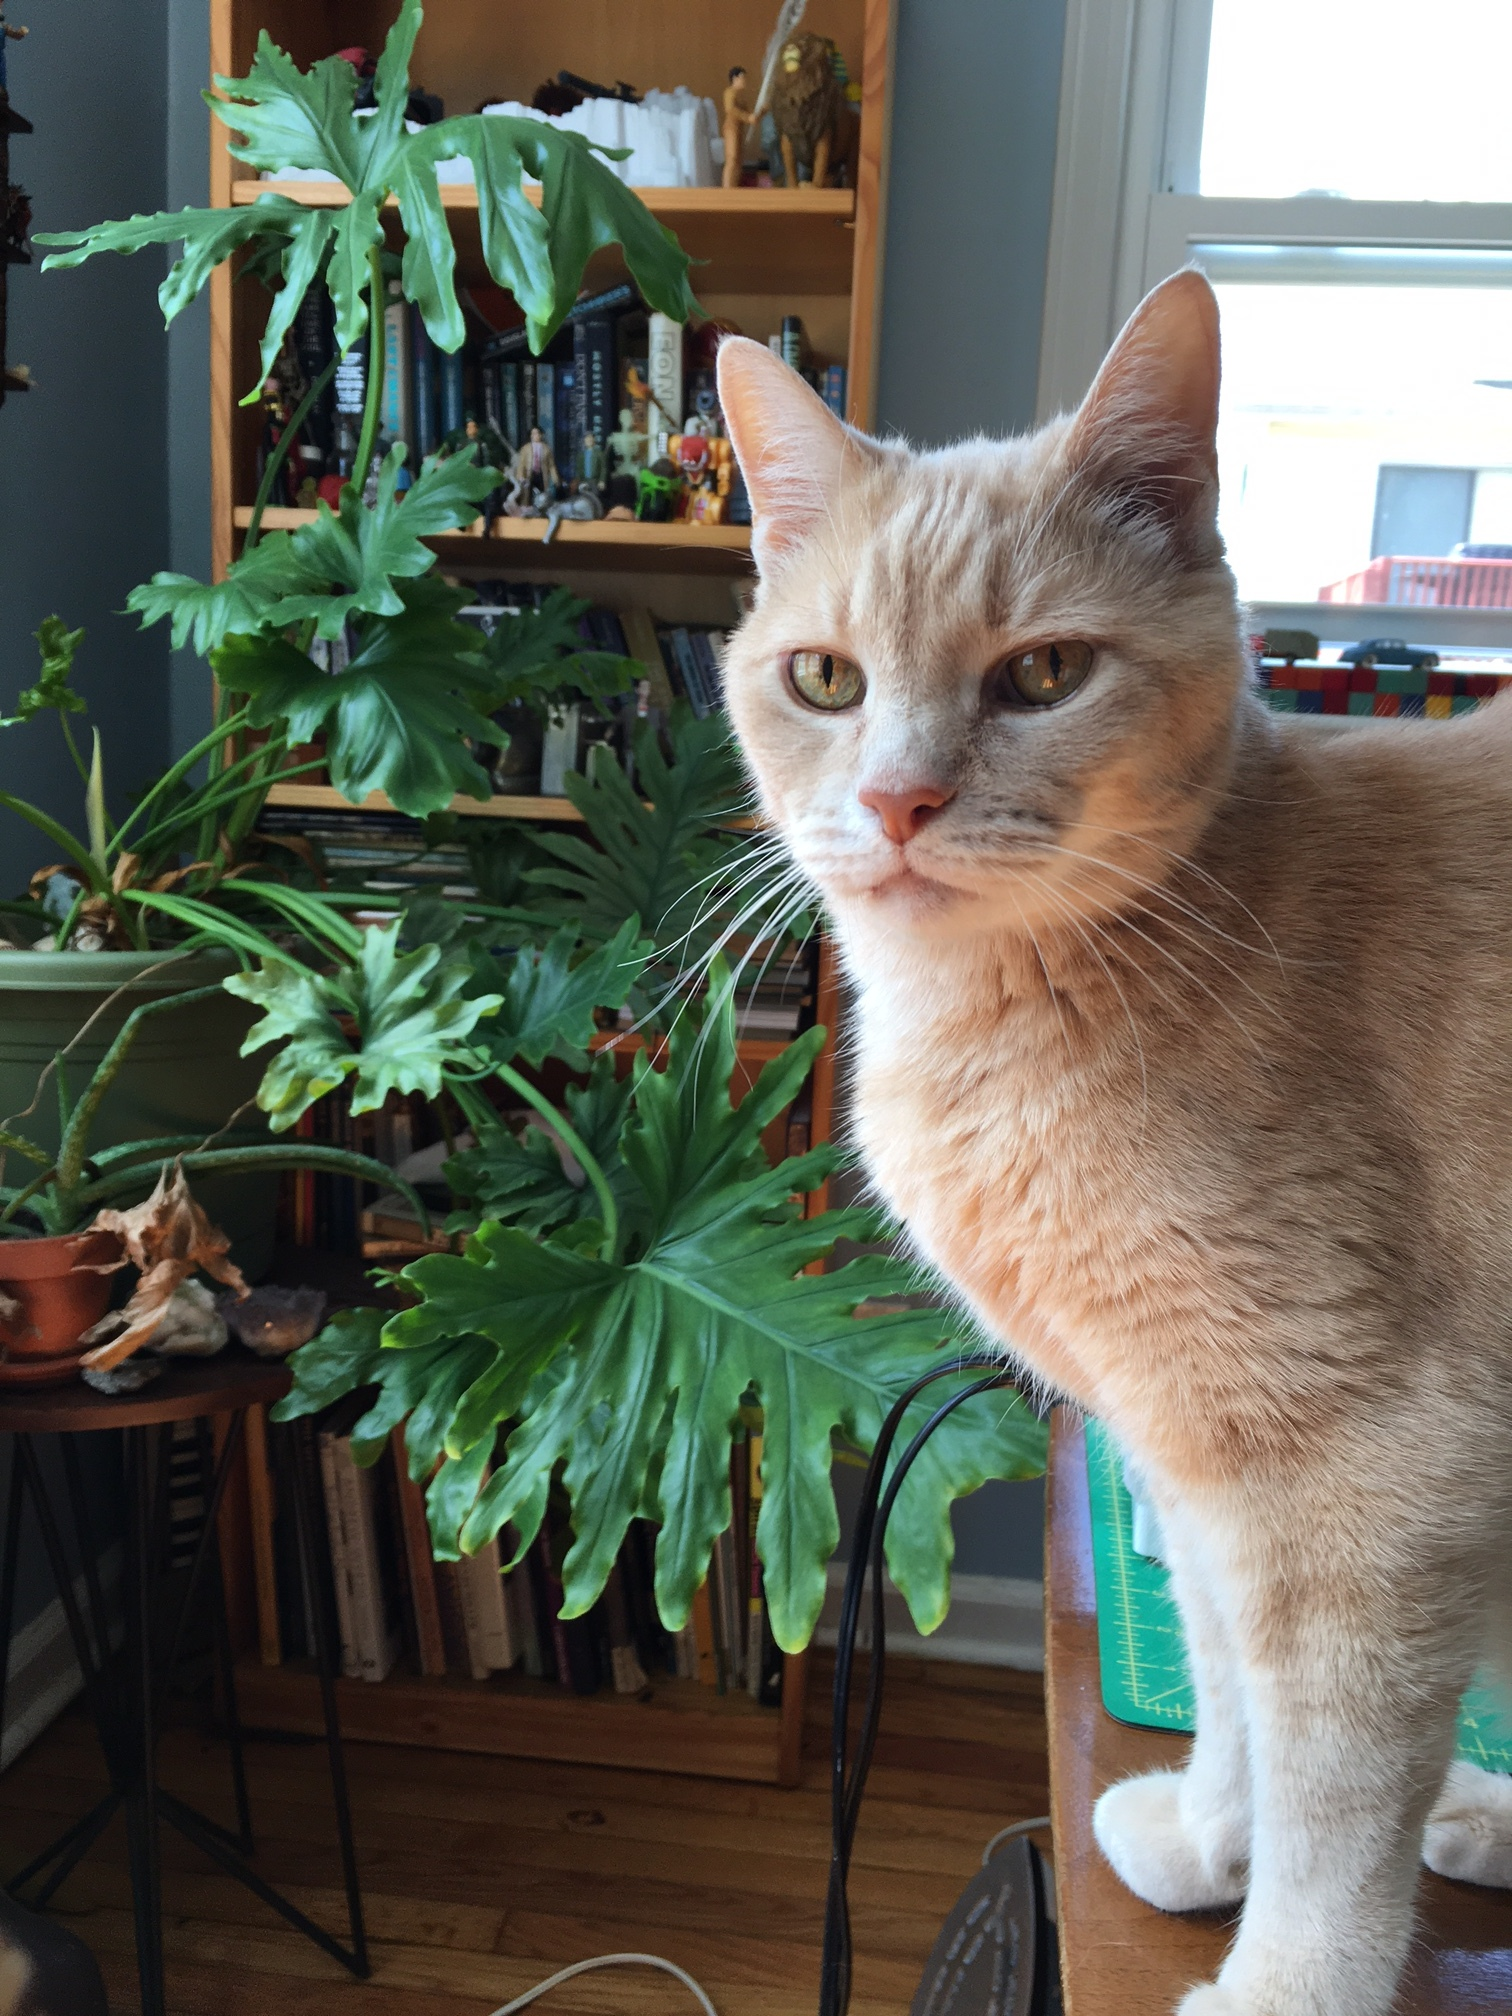 Tom taking care of the house plants!